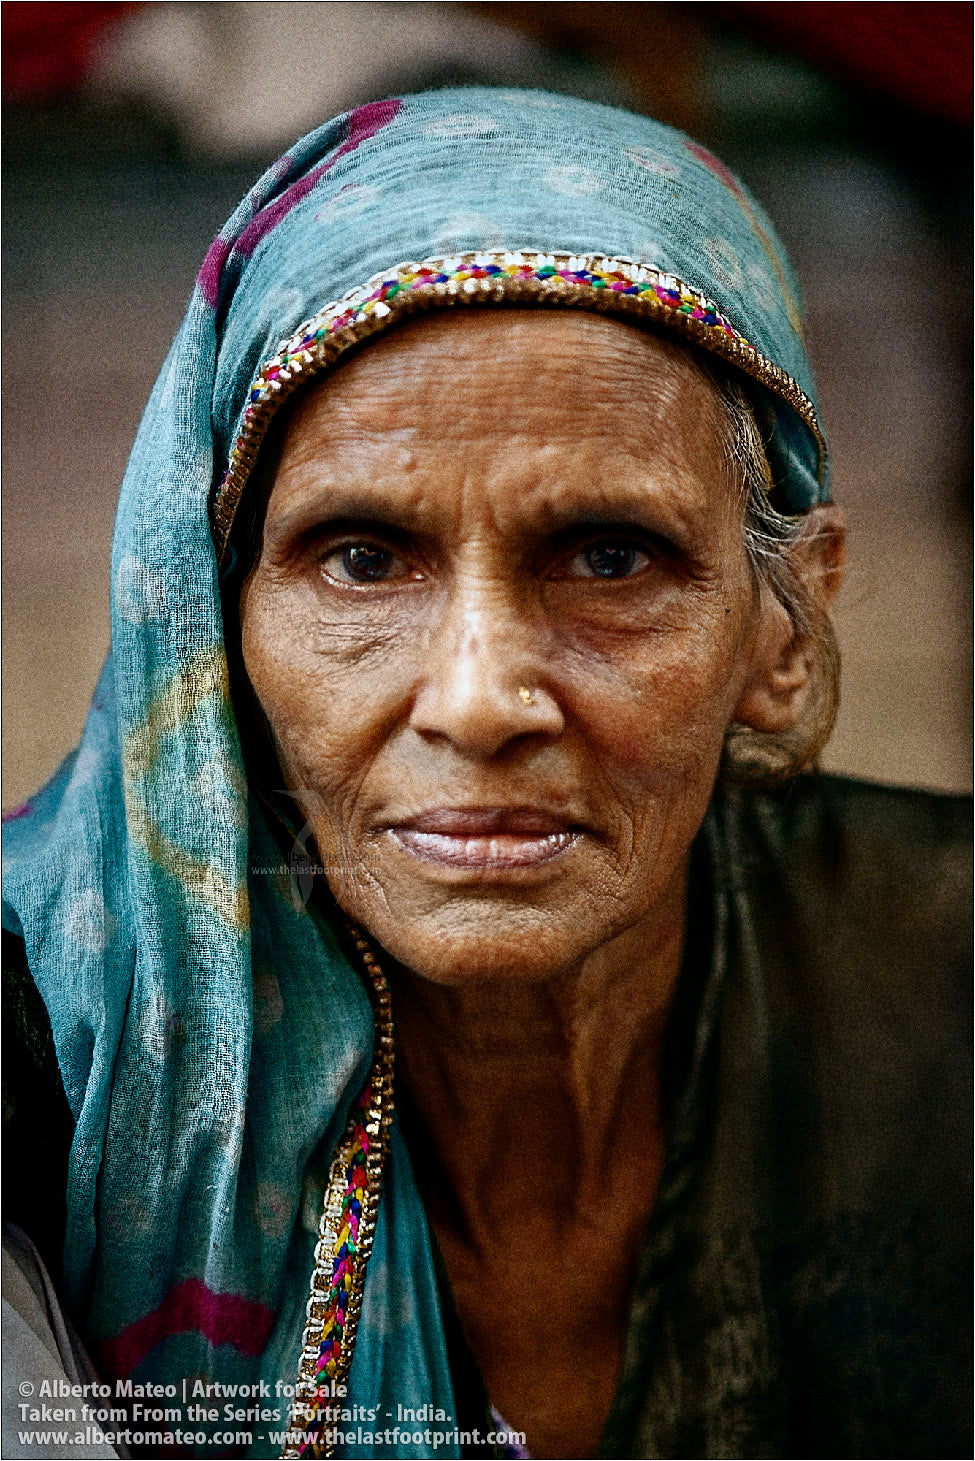 Portrait of elderly woman, Bara Bazar, Kolkata, India.